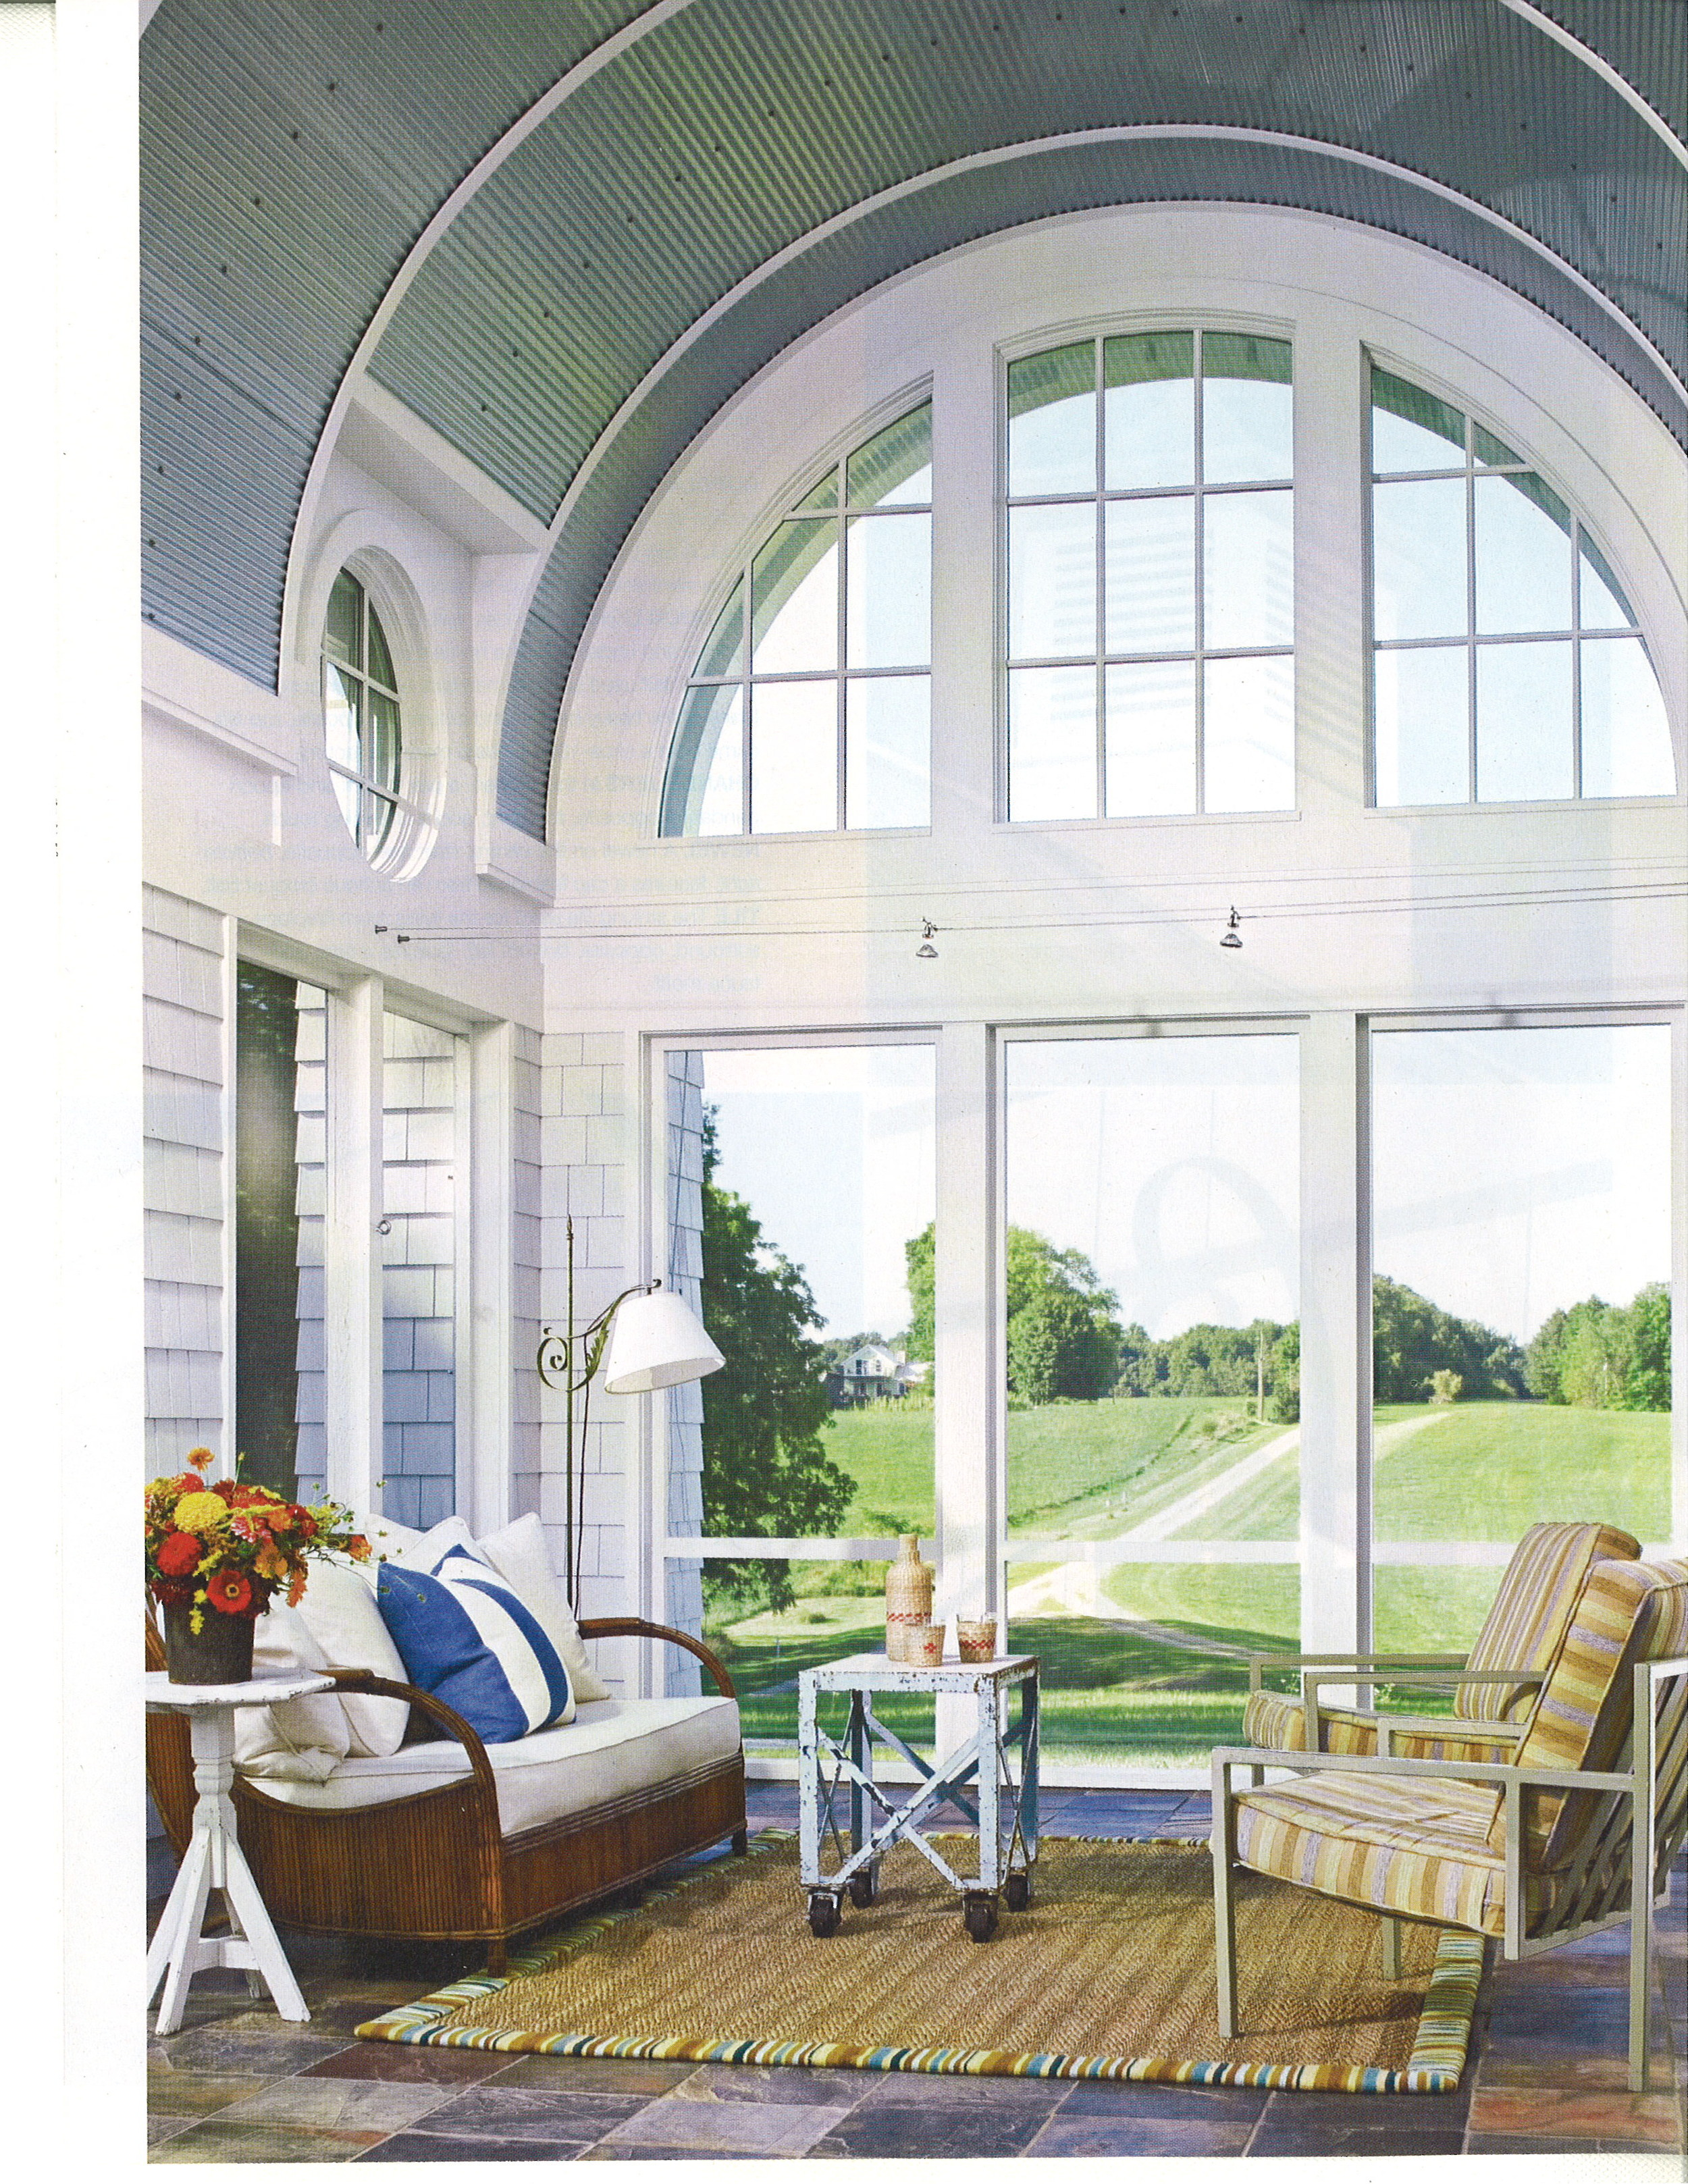 2010Spring_BeautifulHomes_FireflyHill_Page_13.jpg